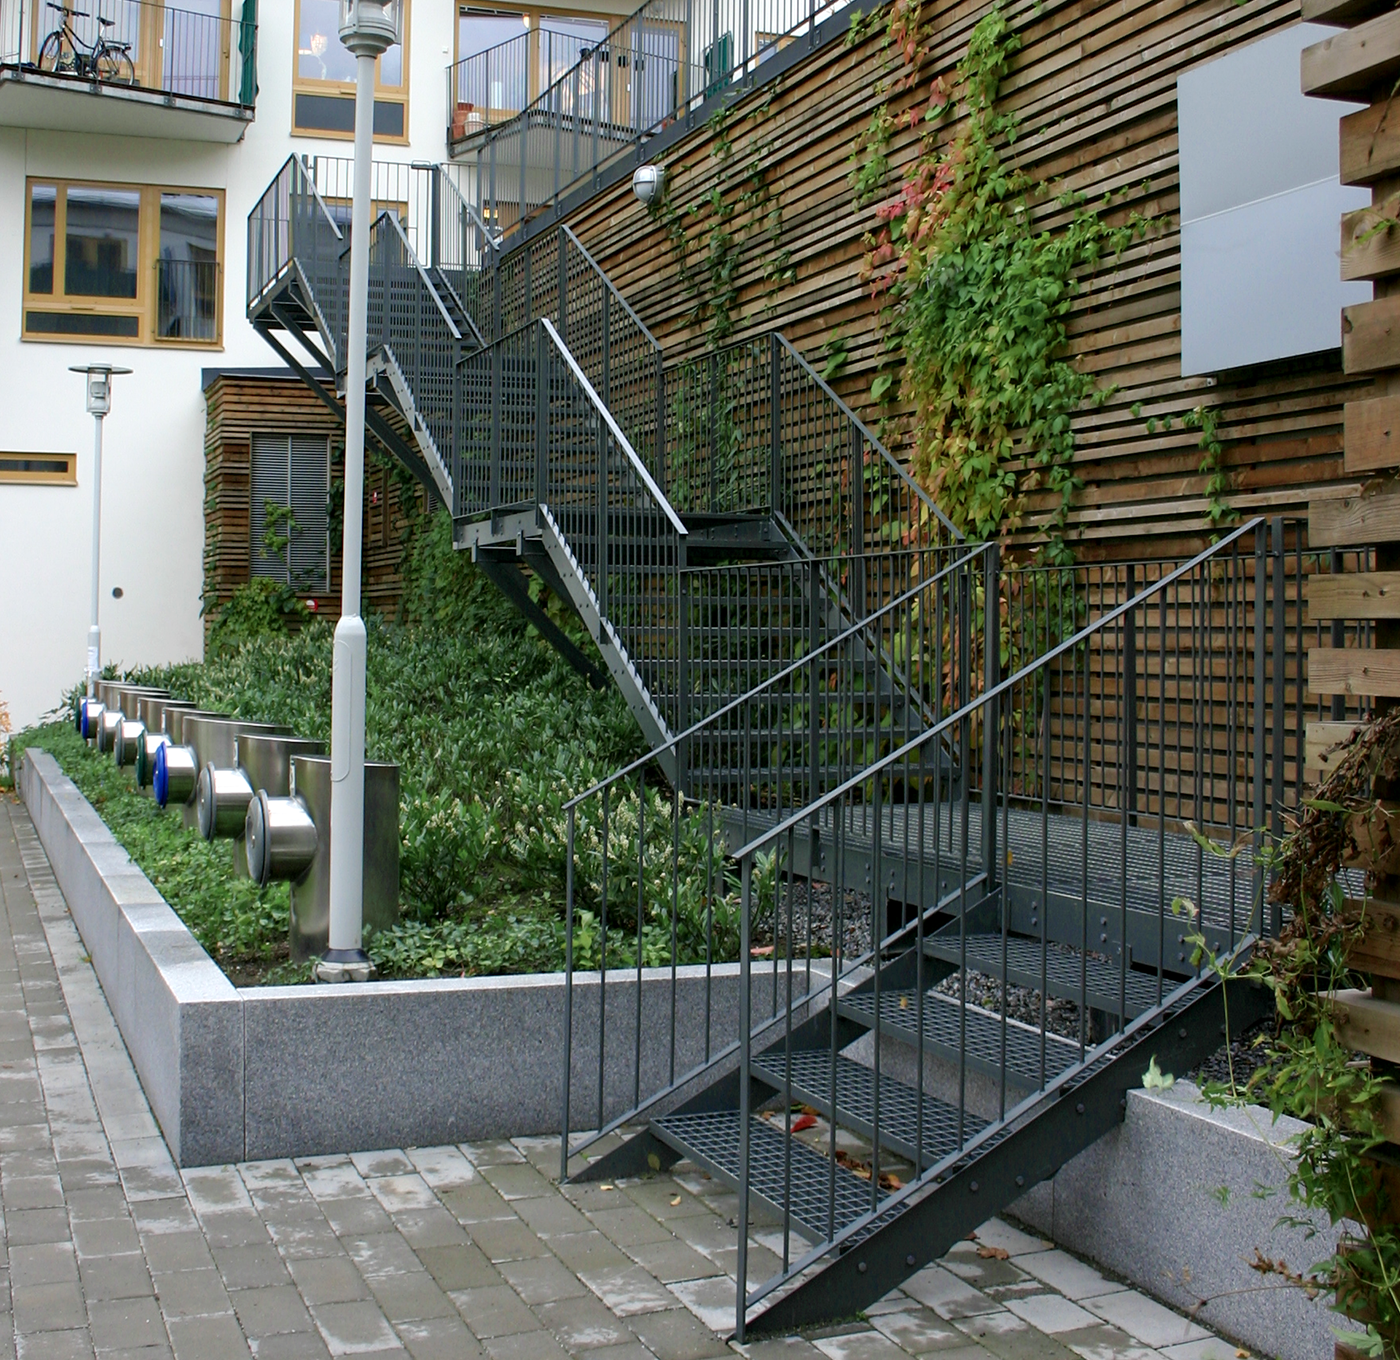 Powder coated straight staircase with grating steps